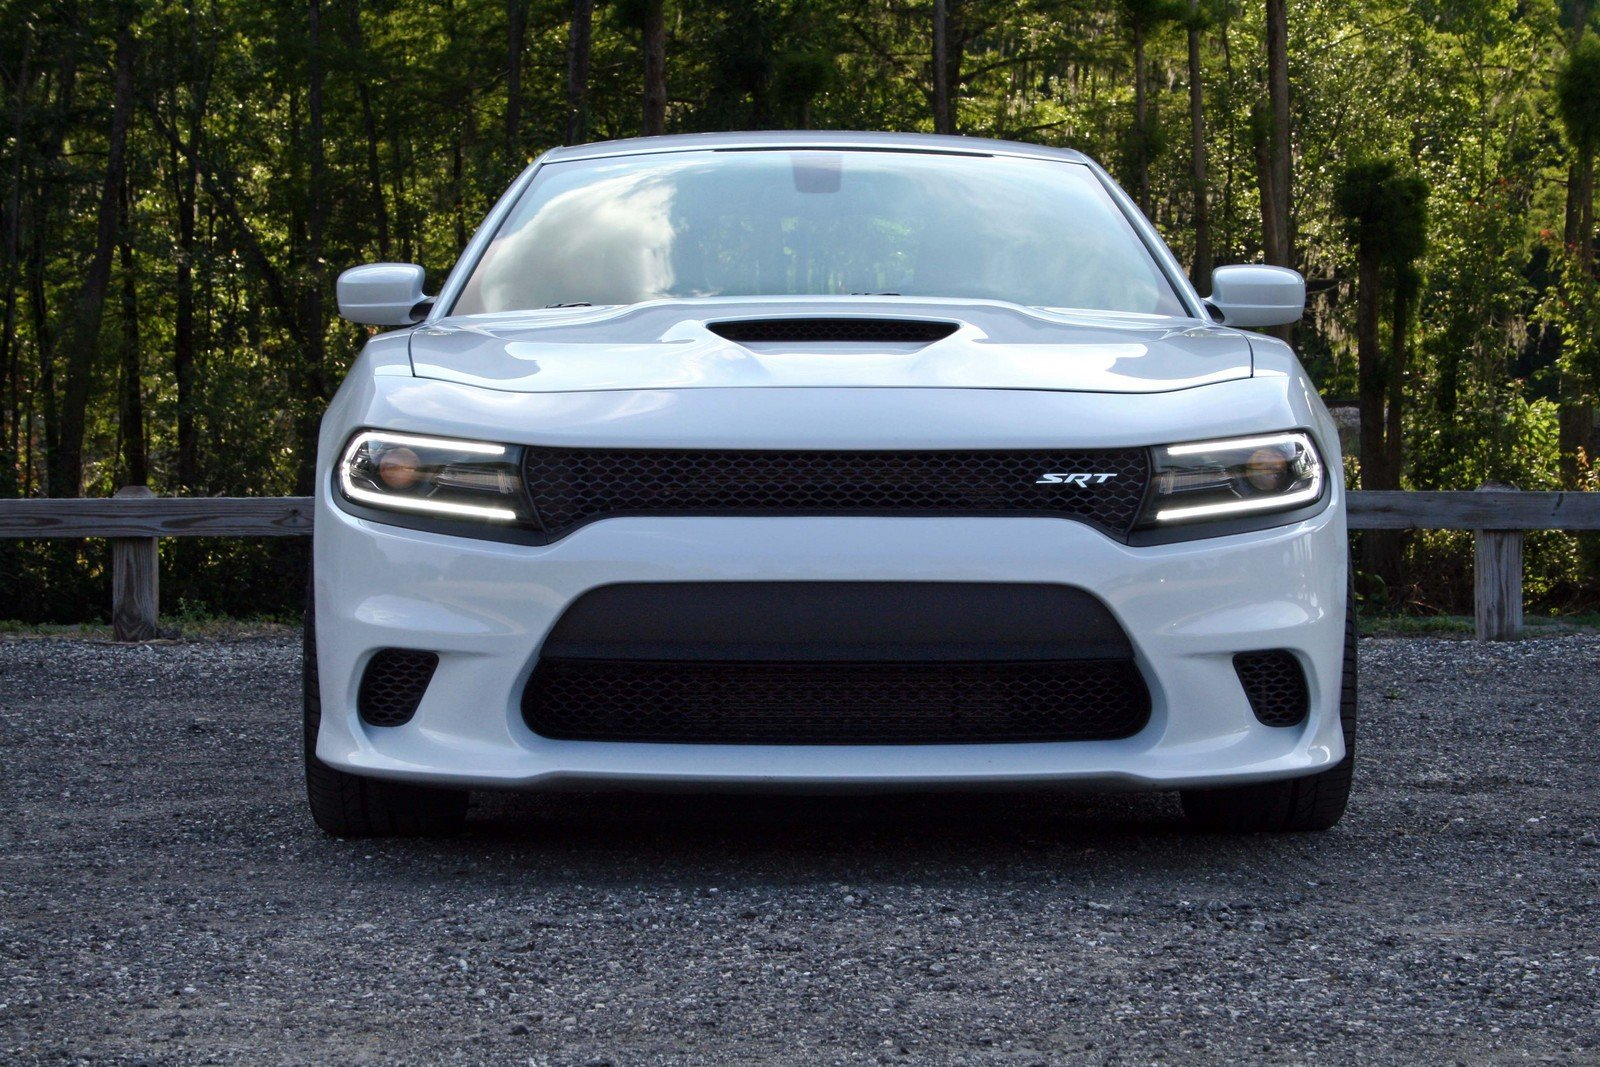 2015 dodge charger srt hellcat driven picture 633233 car review top speed. Black Bedroom Furniture Sets. Home Design Ideas